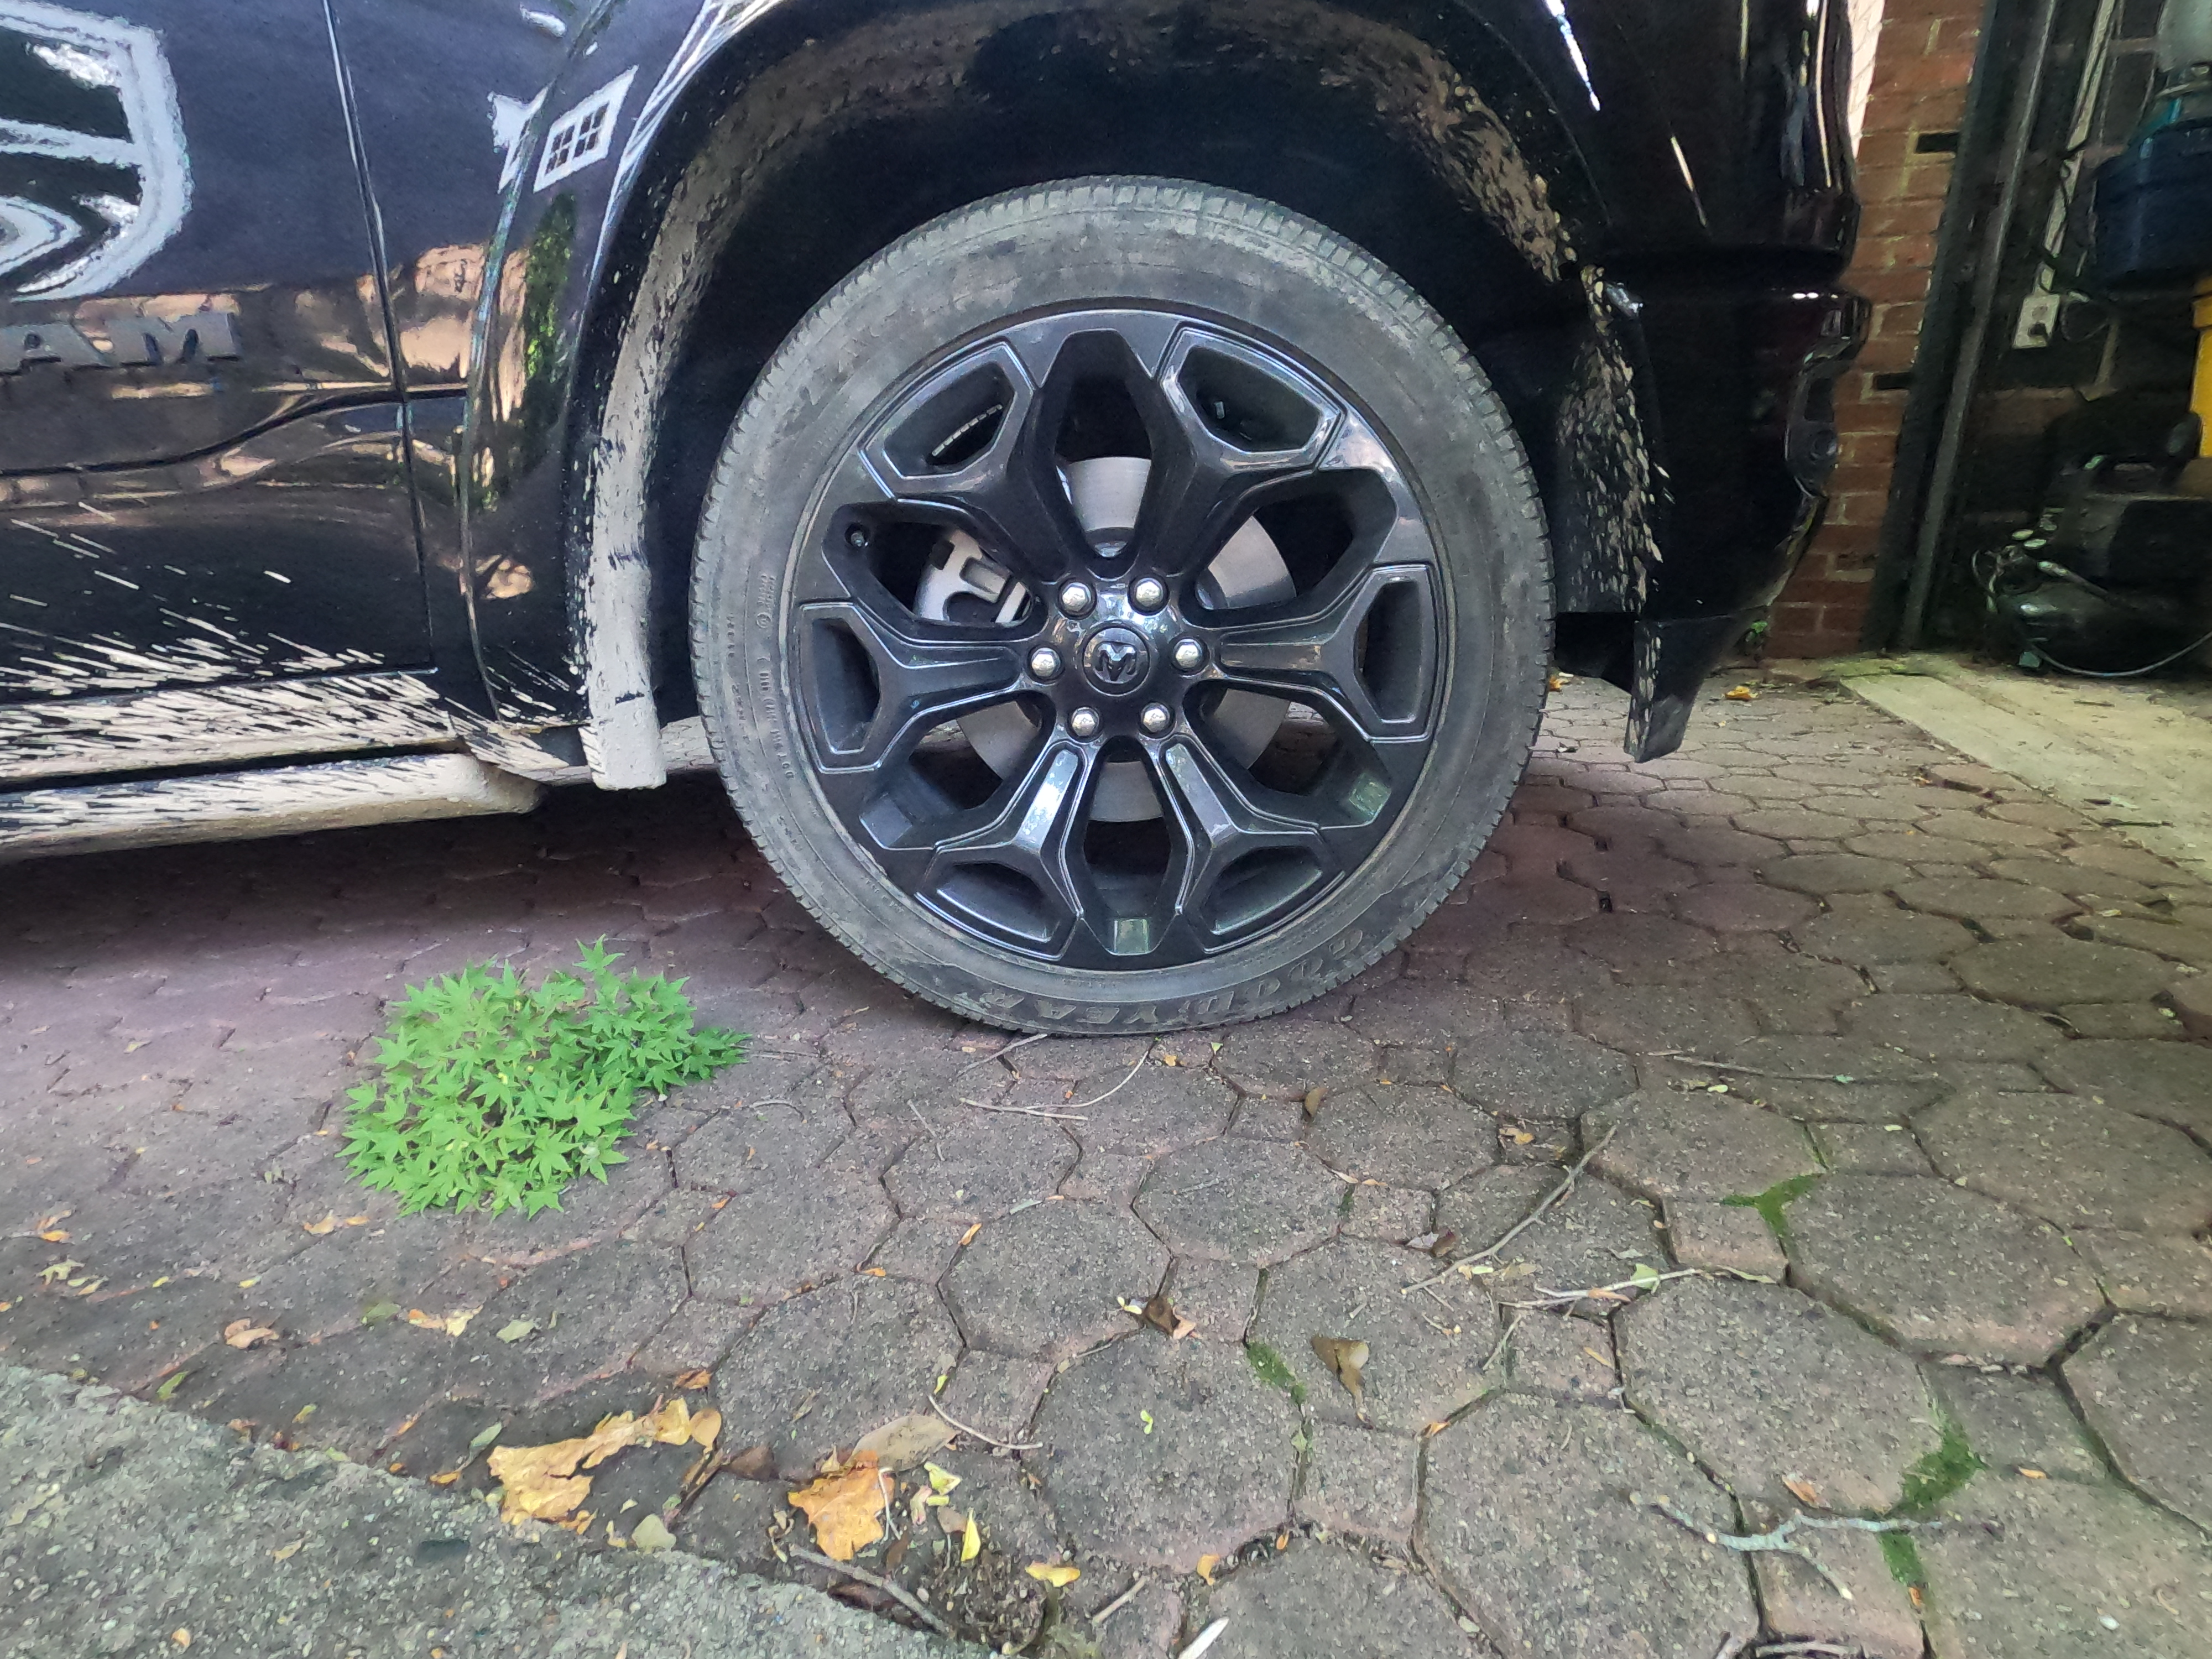 Ram 1500 22 by 9 inch black rims with Goodyear tires